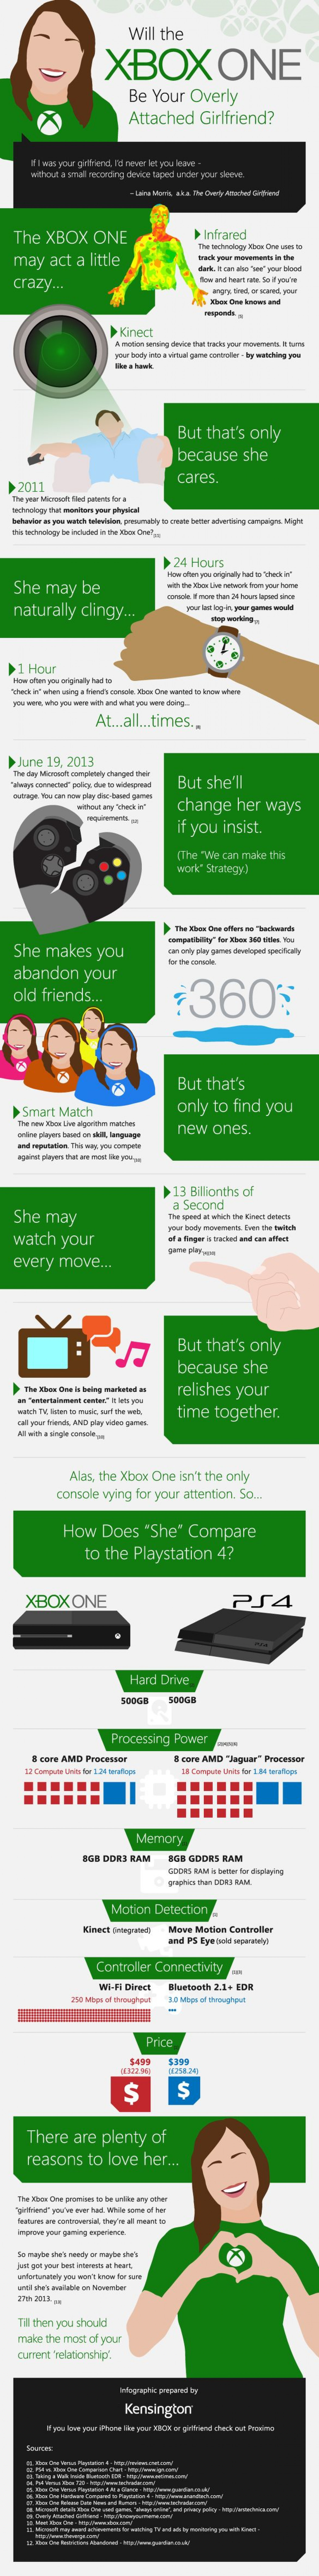 Will the Xbox One Be Your Overly Attached Girlfriend? [Infographic] Infographic